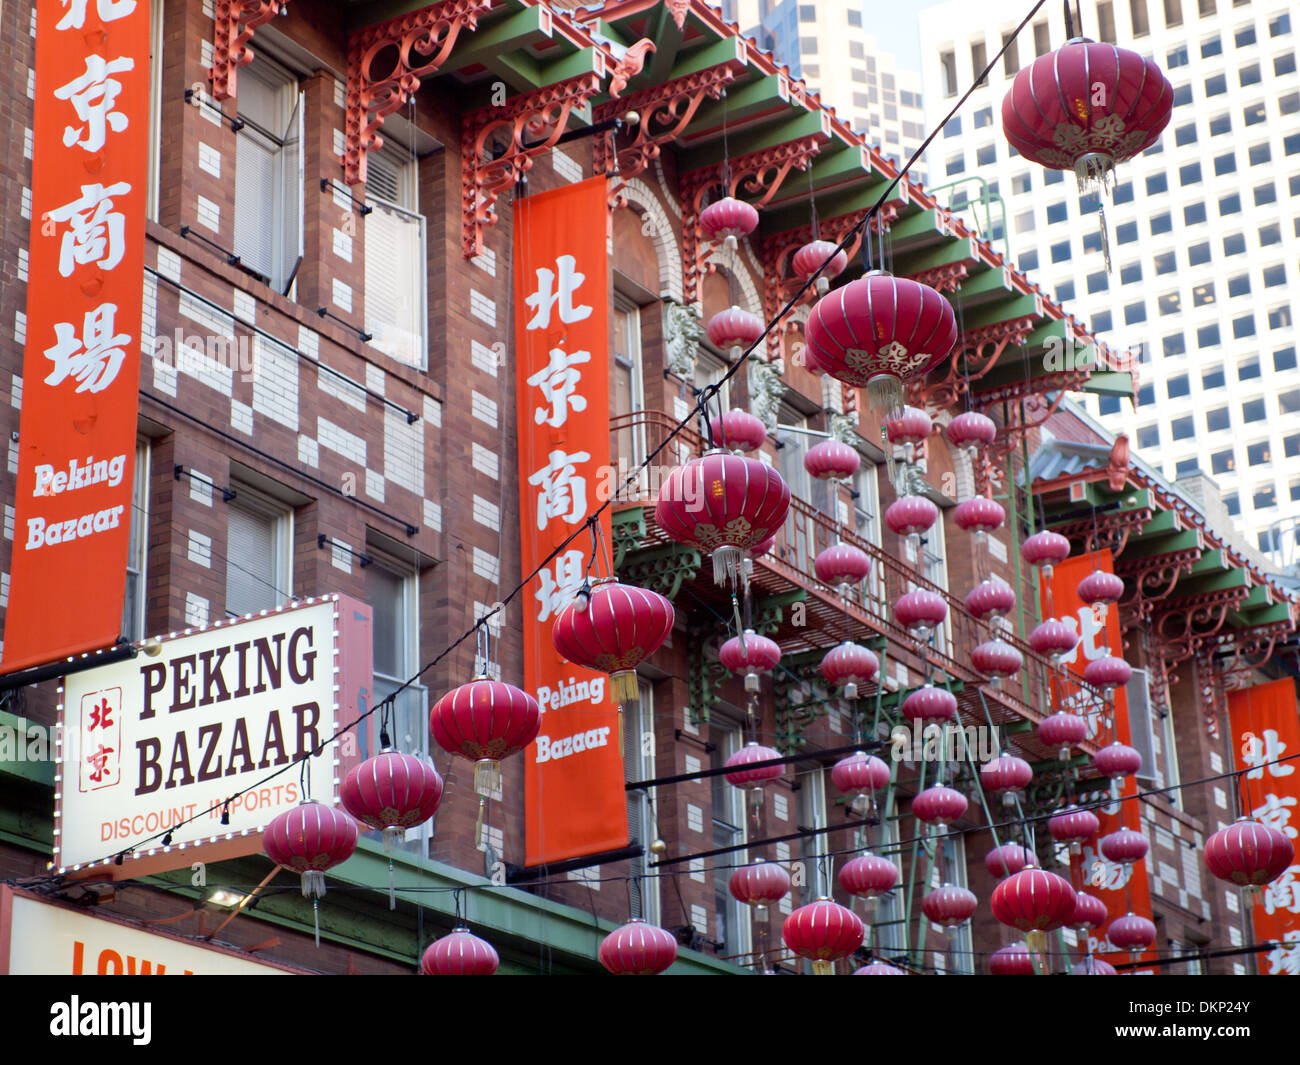 A view of Chinese lanterns and the Peking Bazaar on Grant Avenue in Chinatown San Francisco. - Stock Image